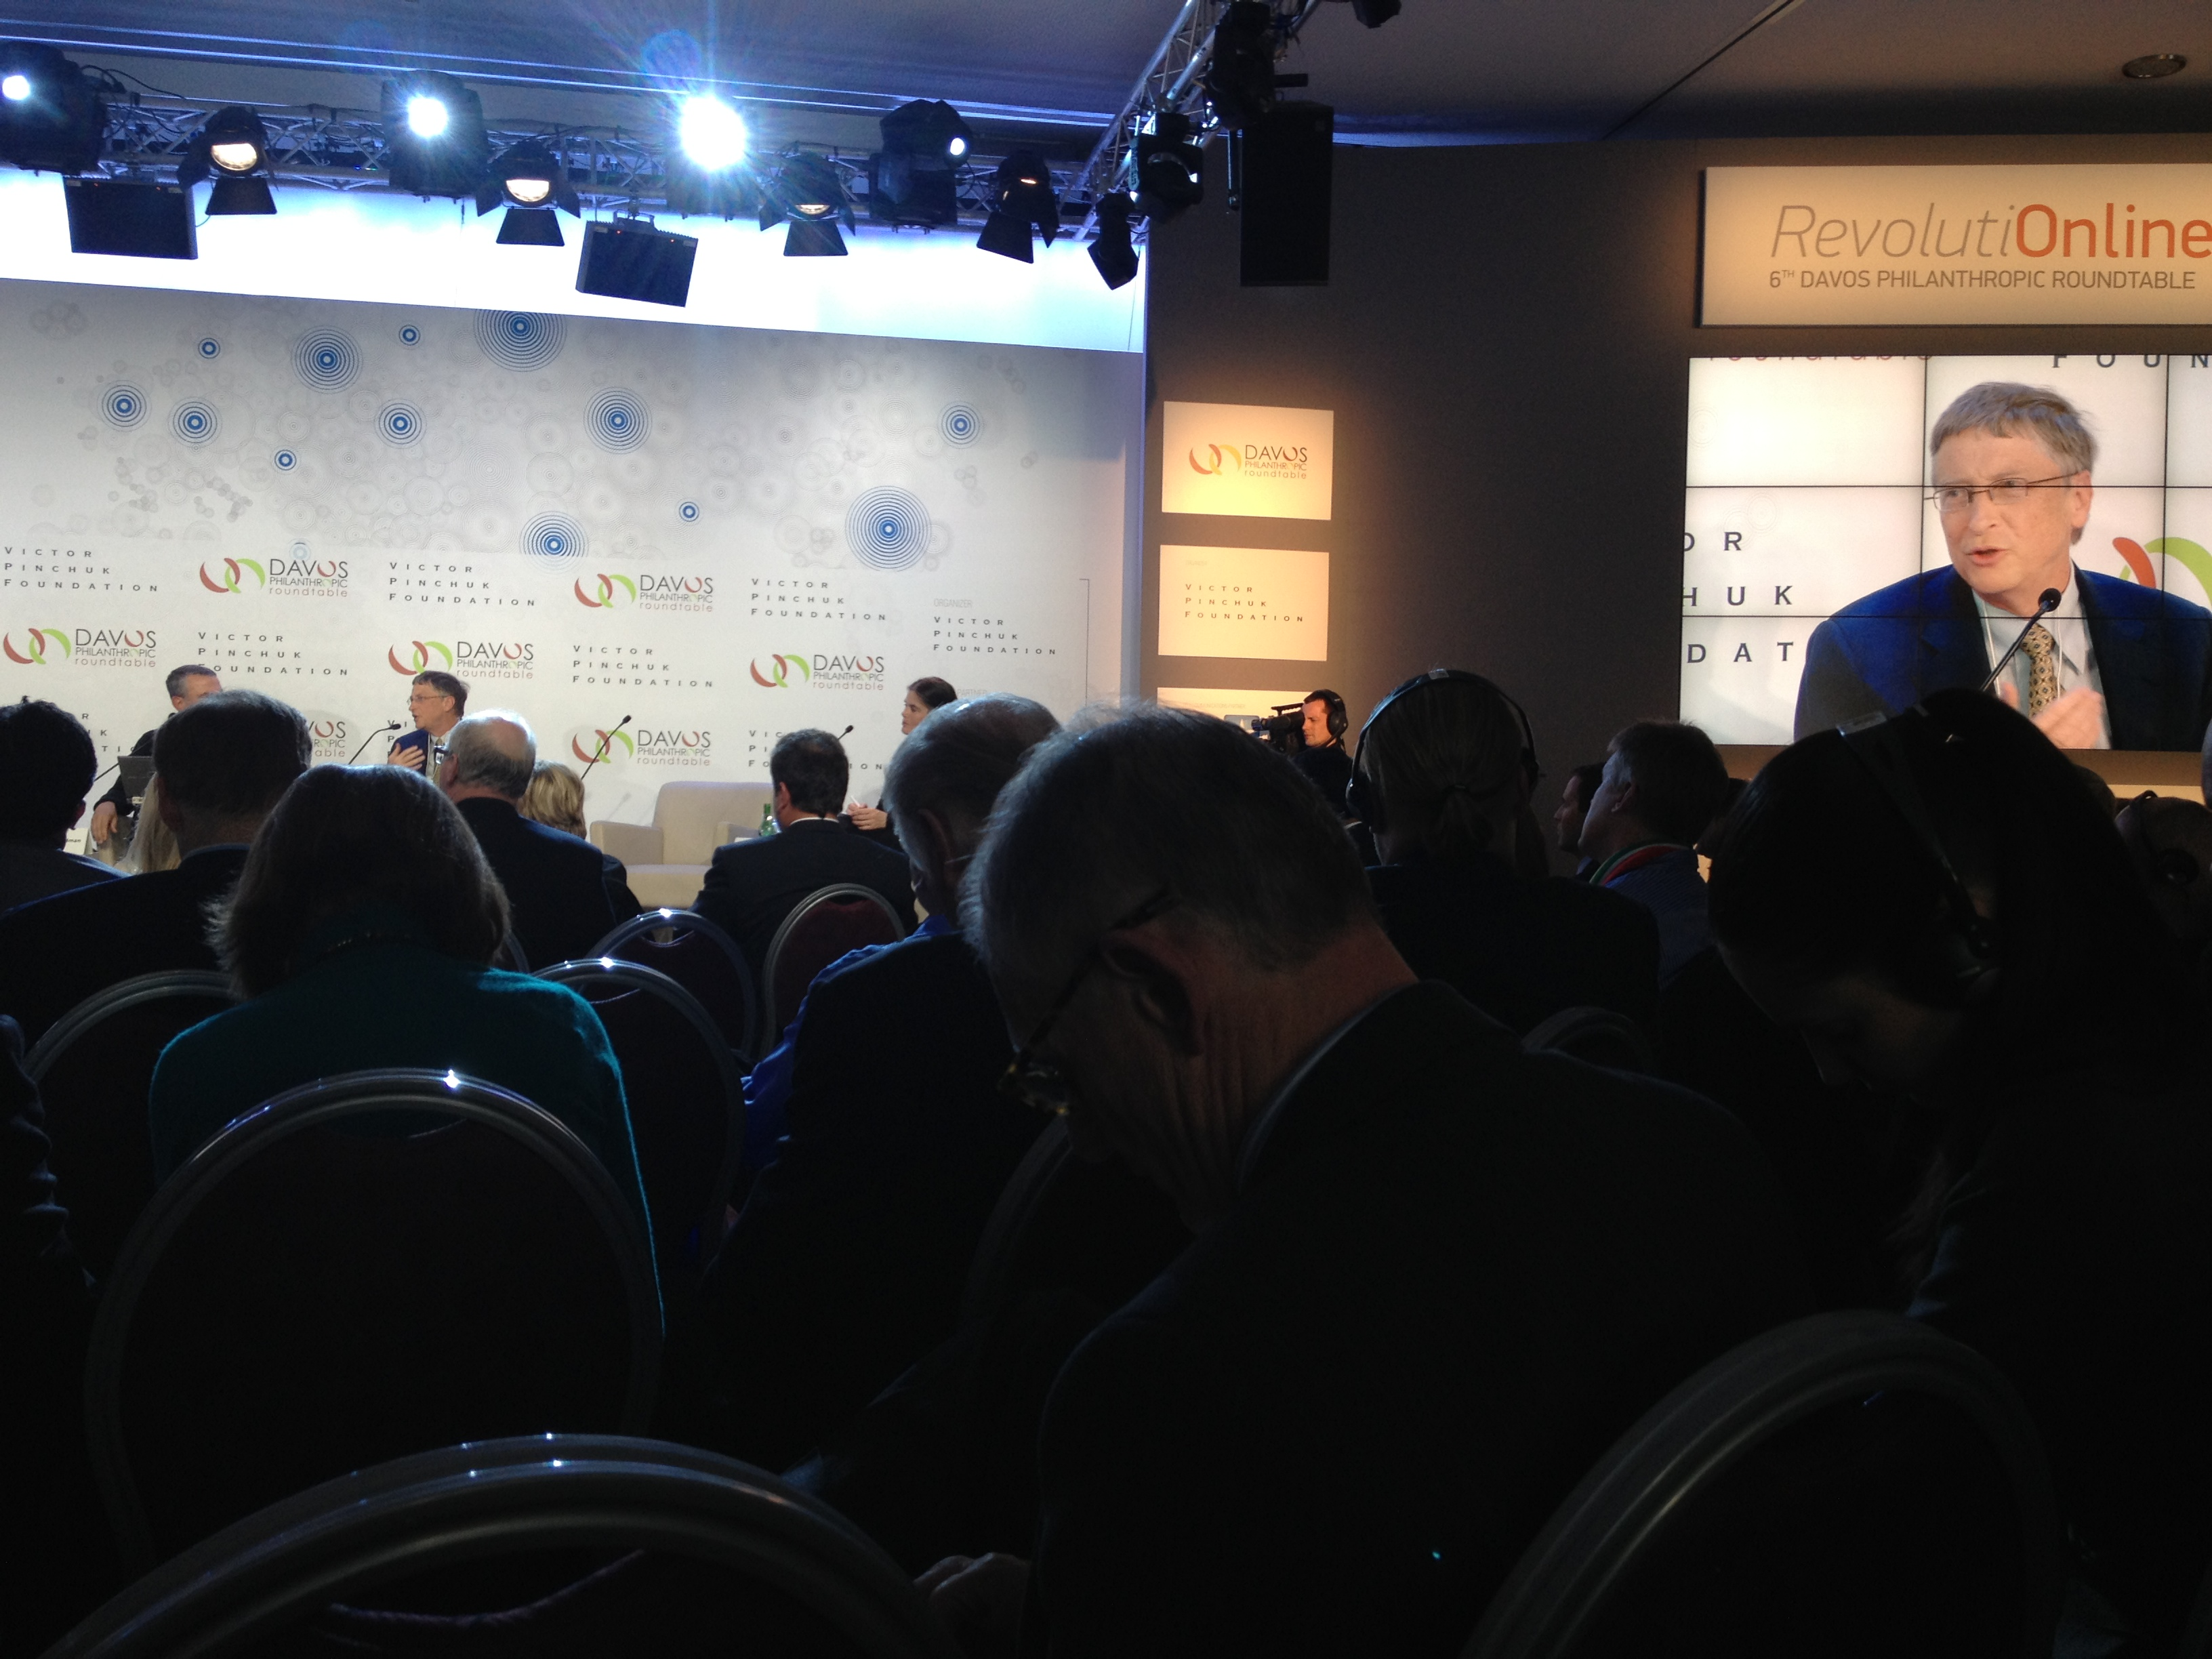 One of many meetings at Davos